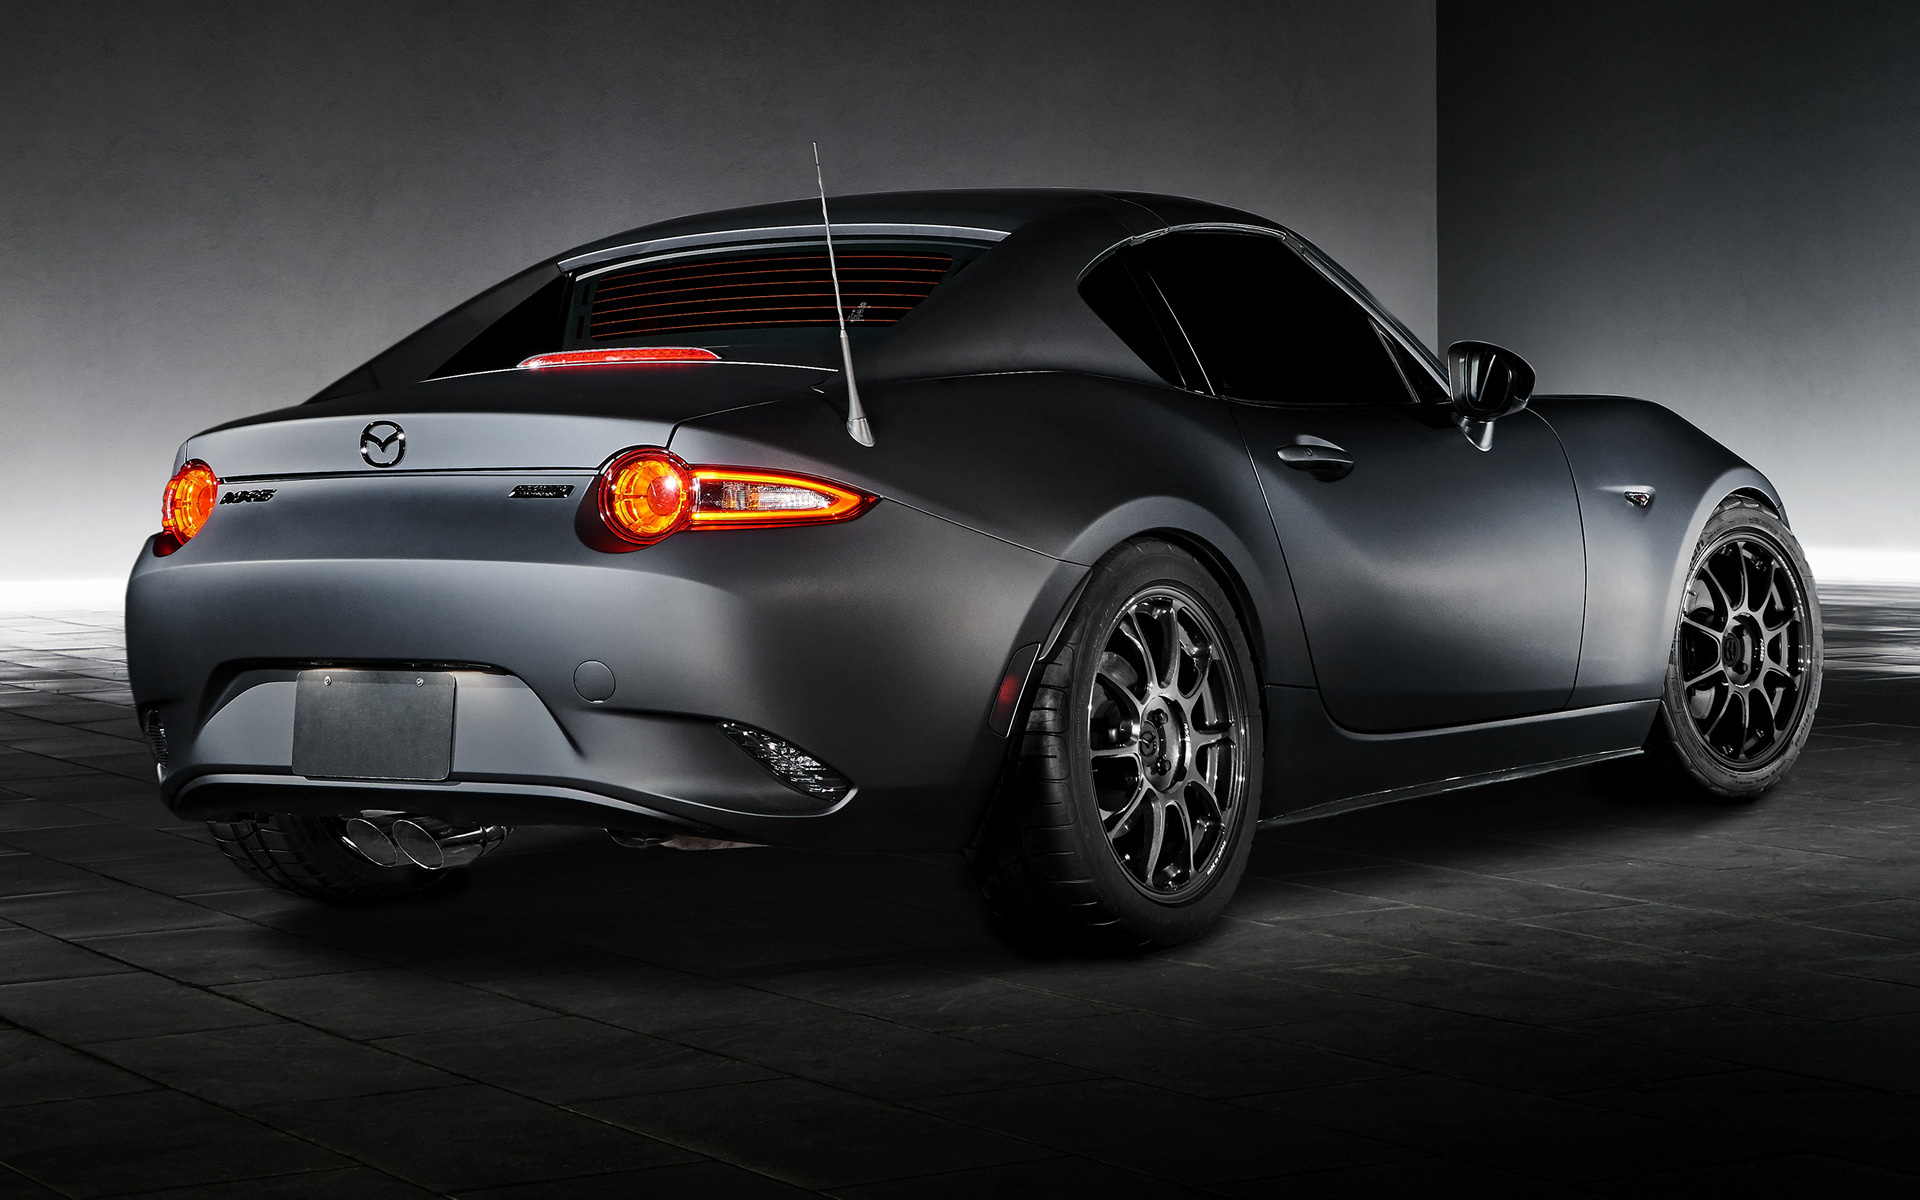 Mazda 6 Sport >> 2016 Mazda MX-5 Miata RF Kuro Concept - Wallpapers and HD ...